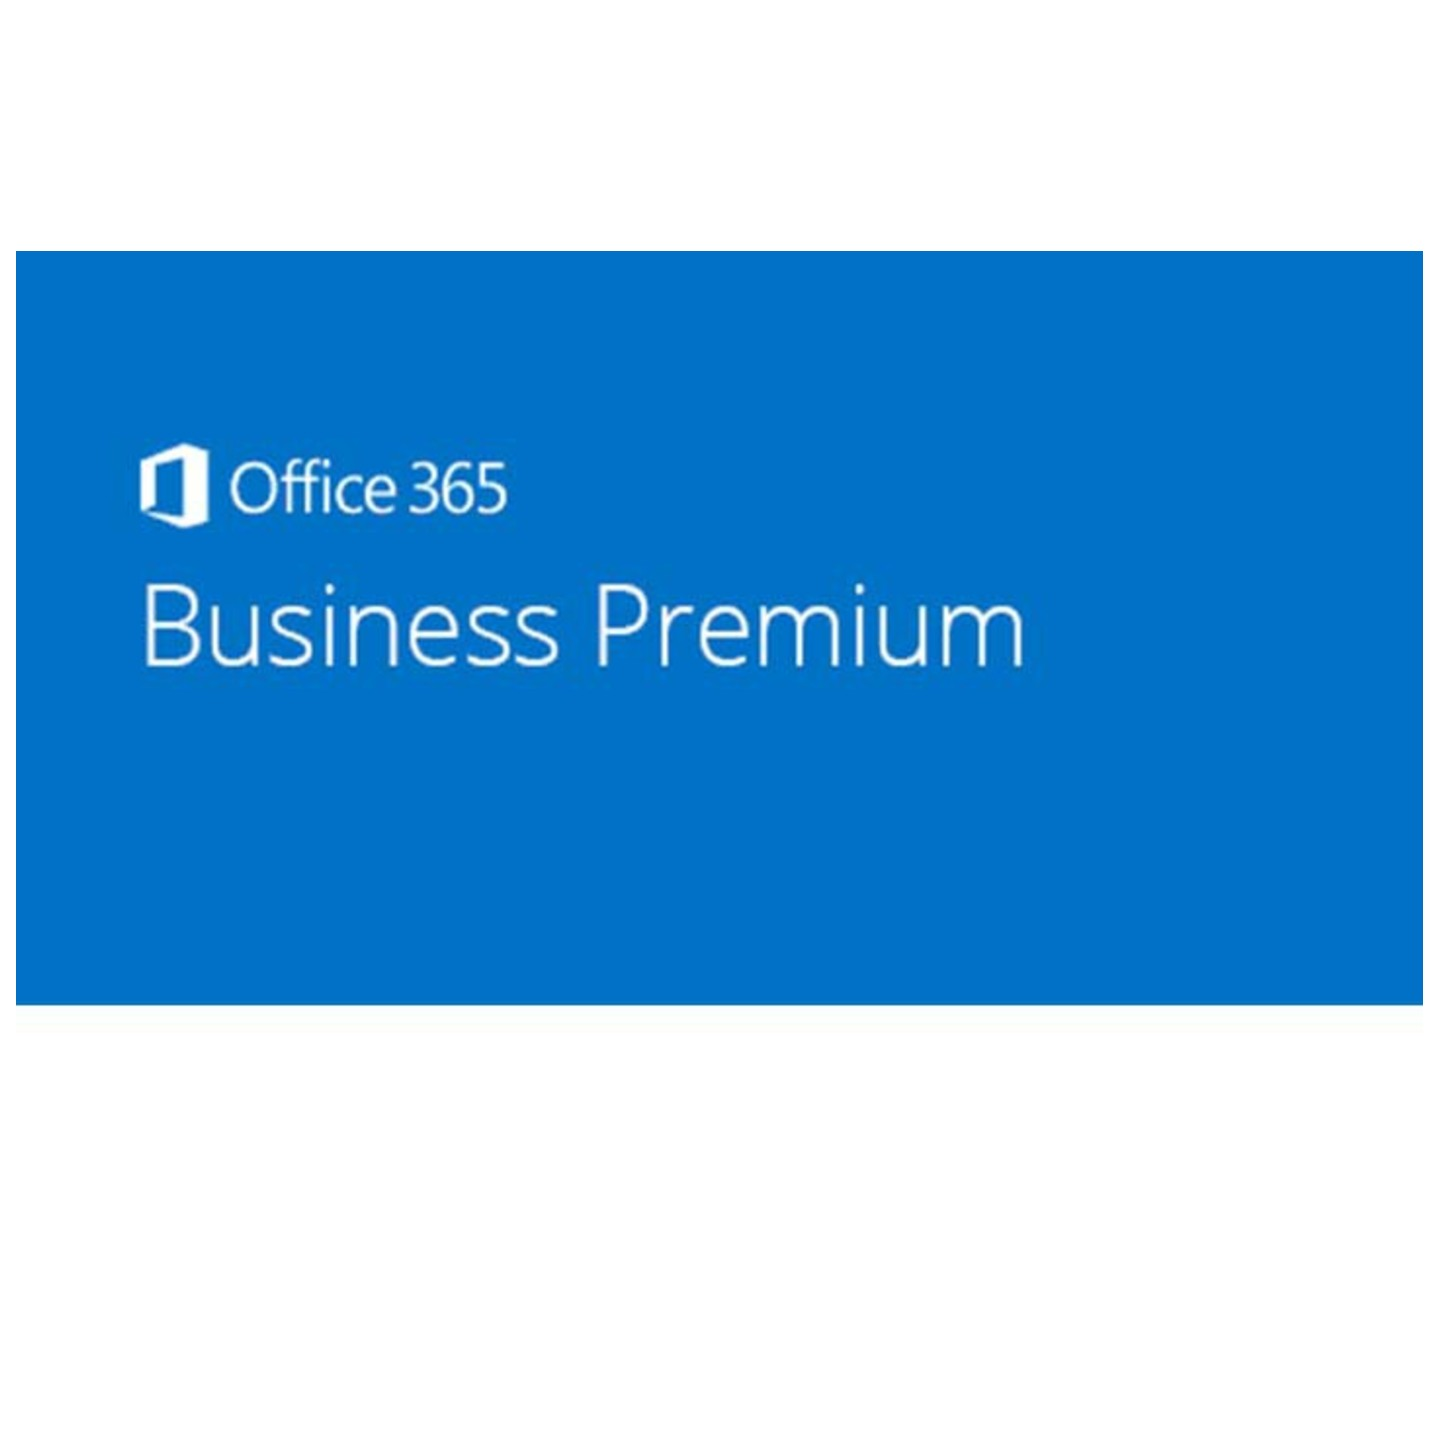 Office 365 Business Premium